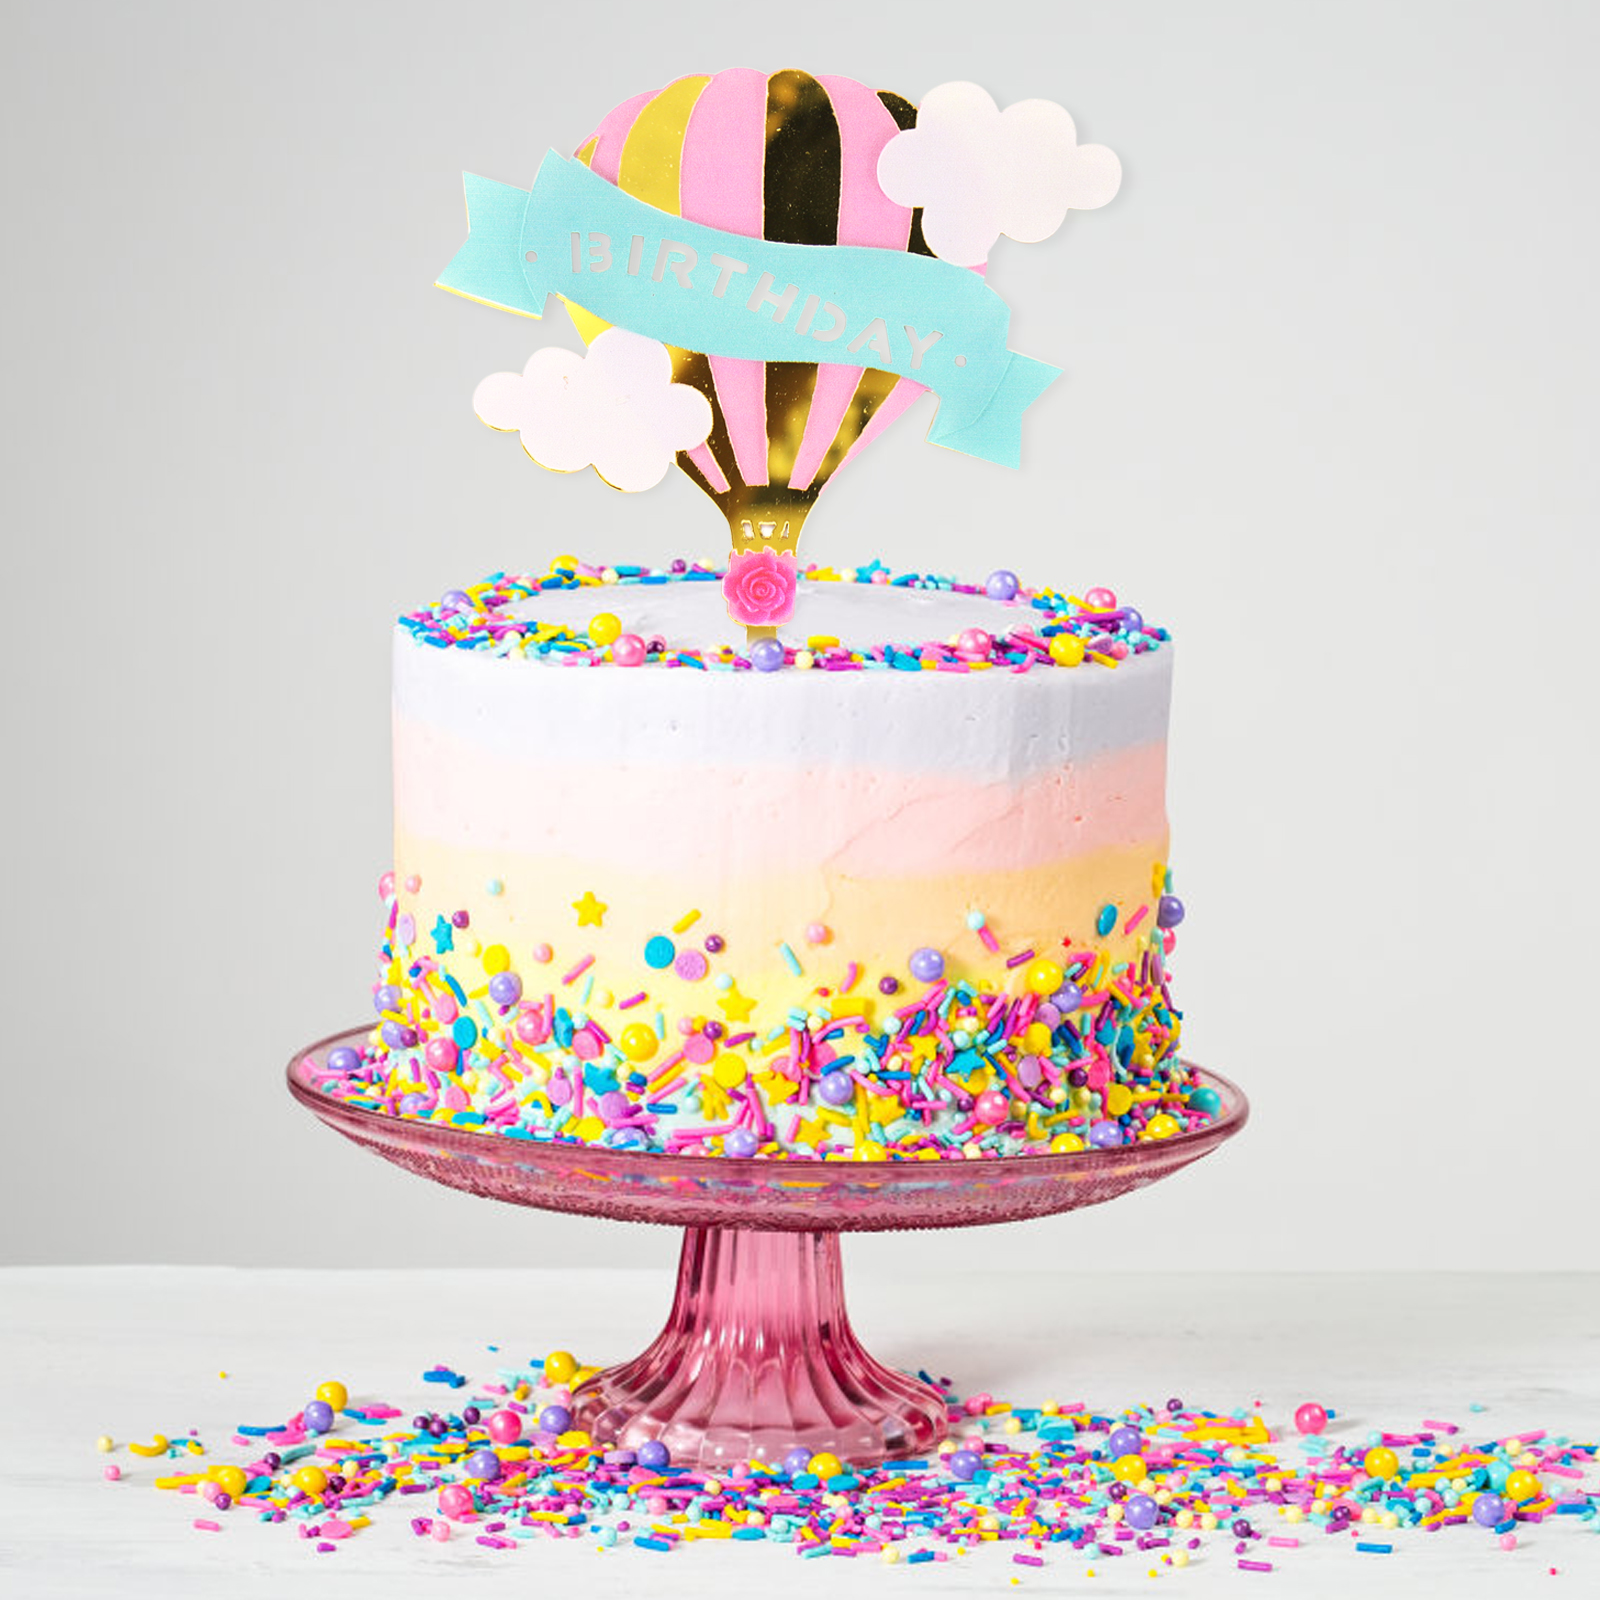 1pc Happy Birthday Cake Topper Material Acrylic Size As The Picture Party Baby Shower Decorations